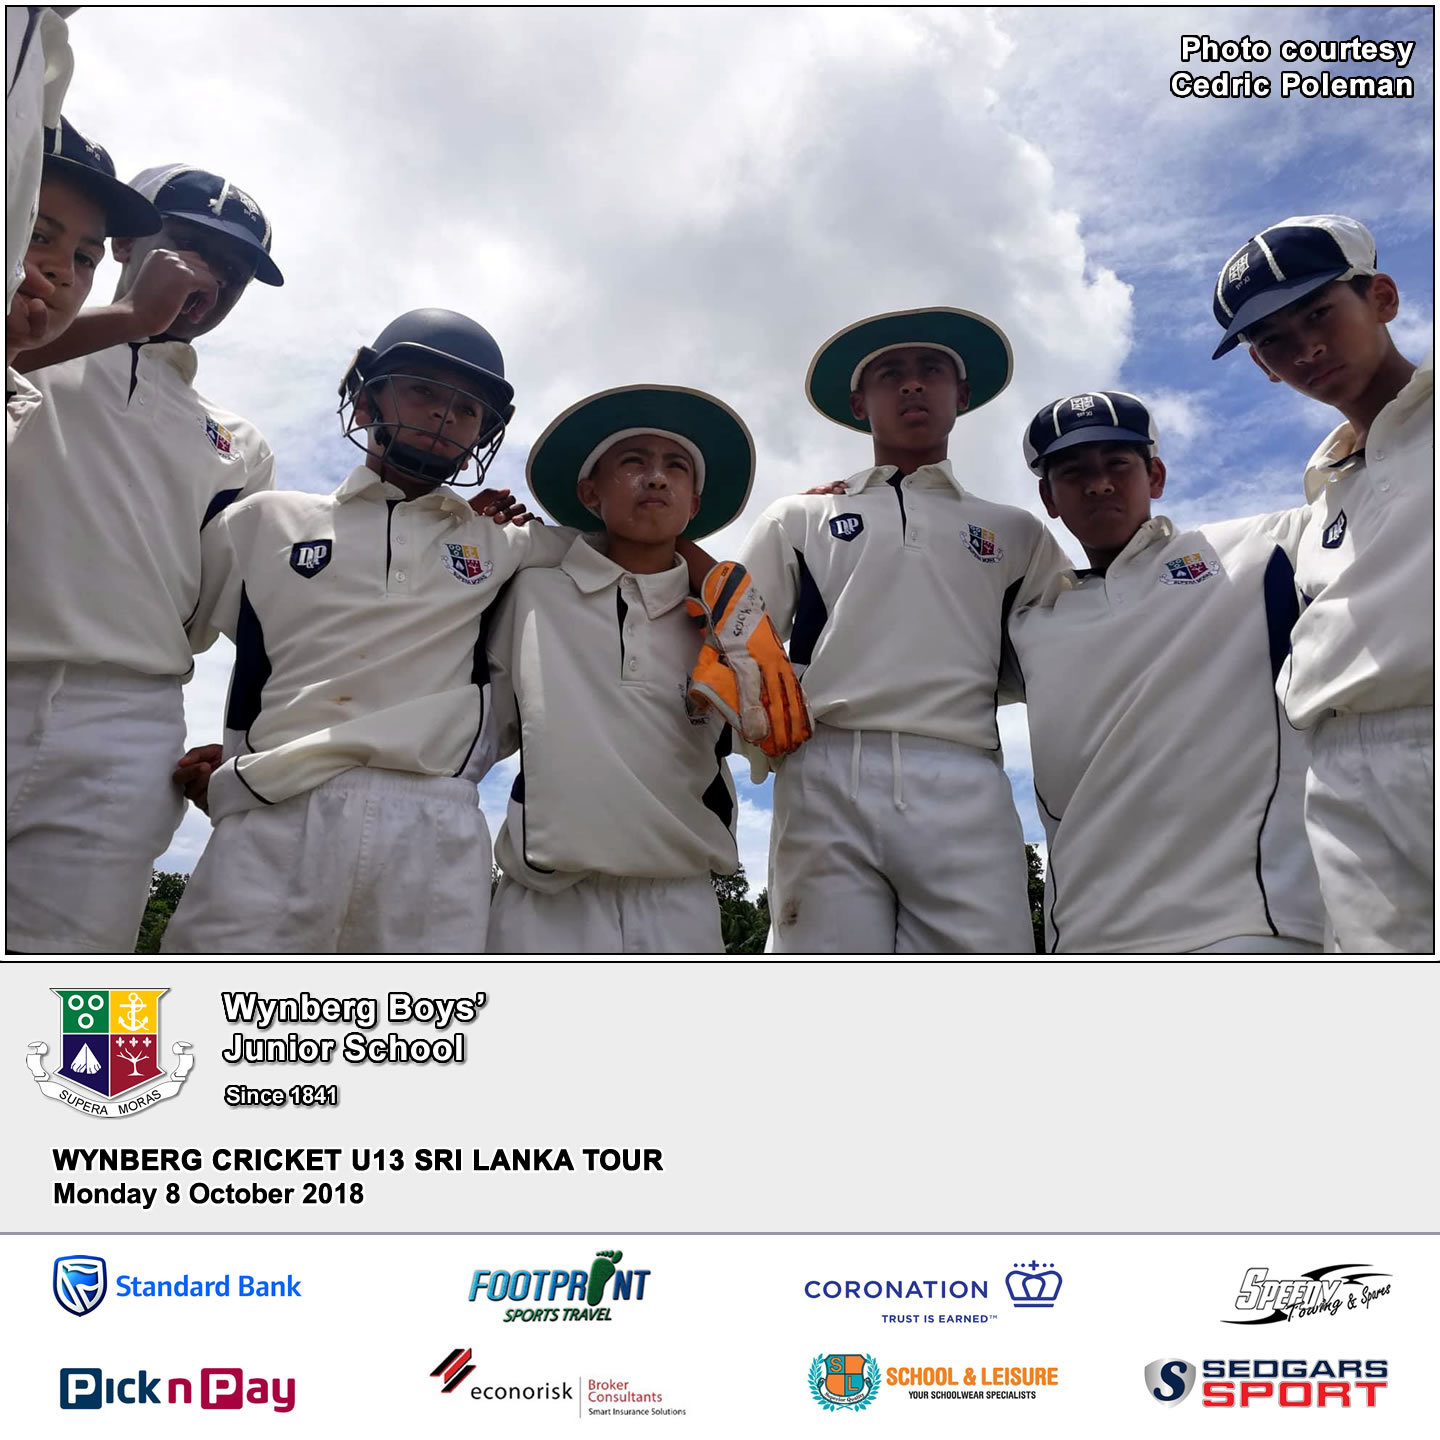 Day 8: Match 4 at Mahinda College Grounds in Galle, Monday 8 October 2018